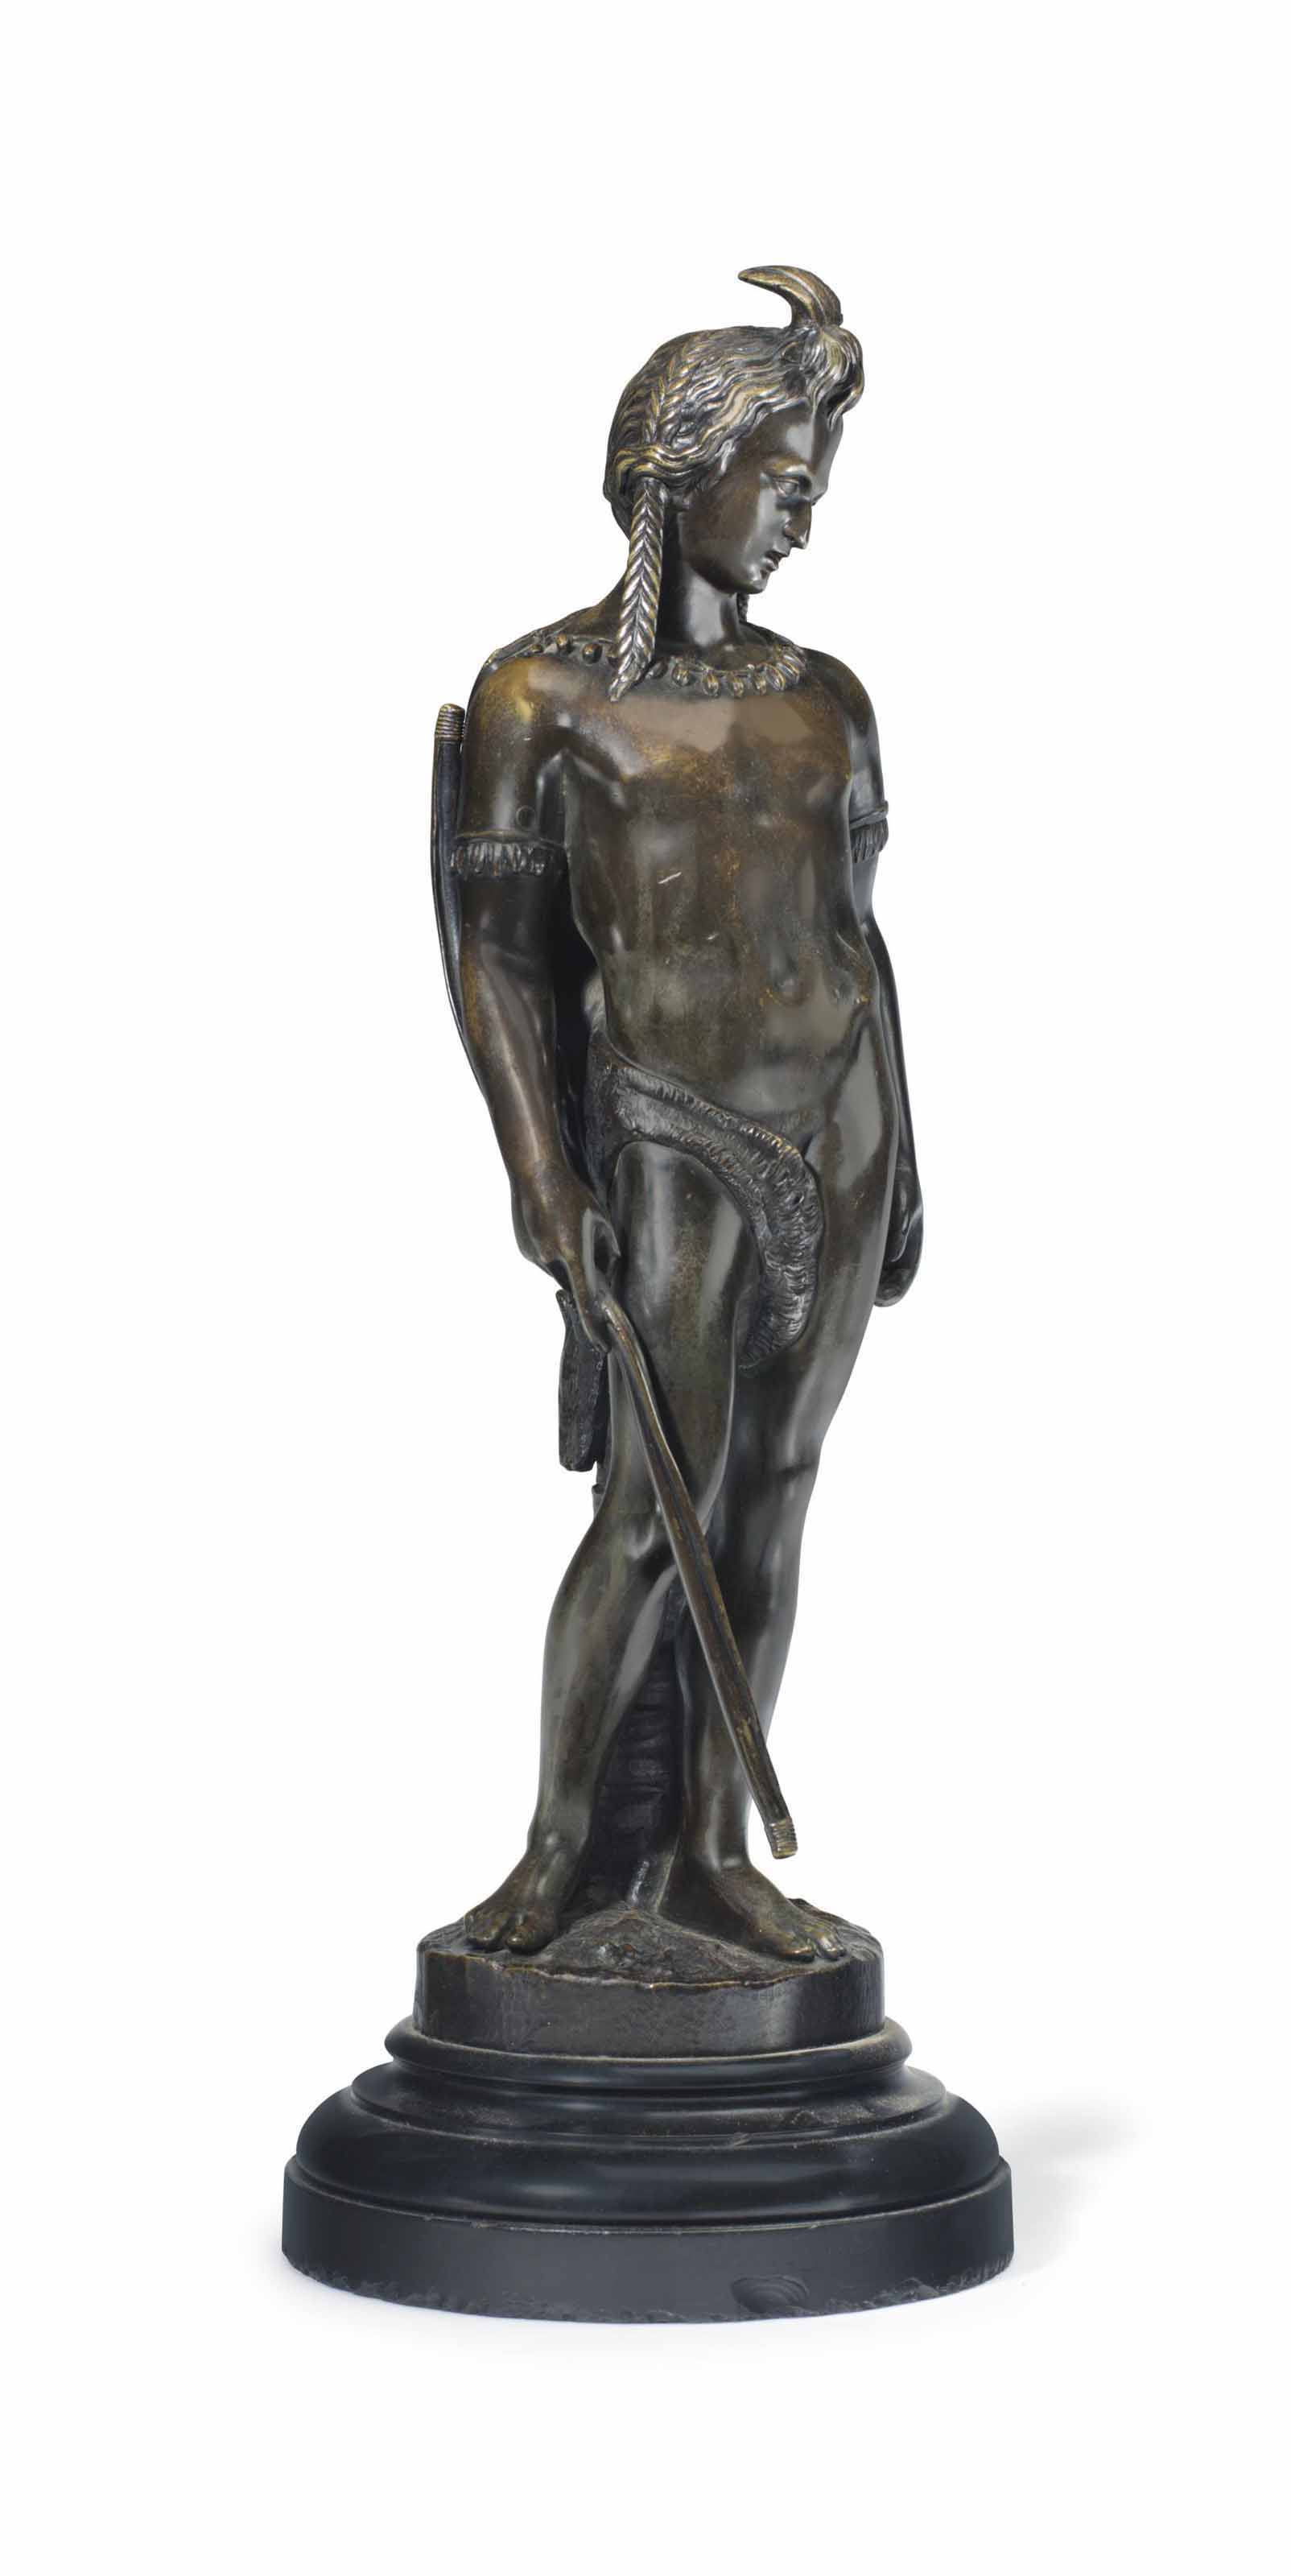 A FRENCH PATINATED BRONZE FIGURE OF A 'NOBLE SAVAGE'